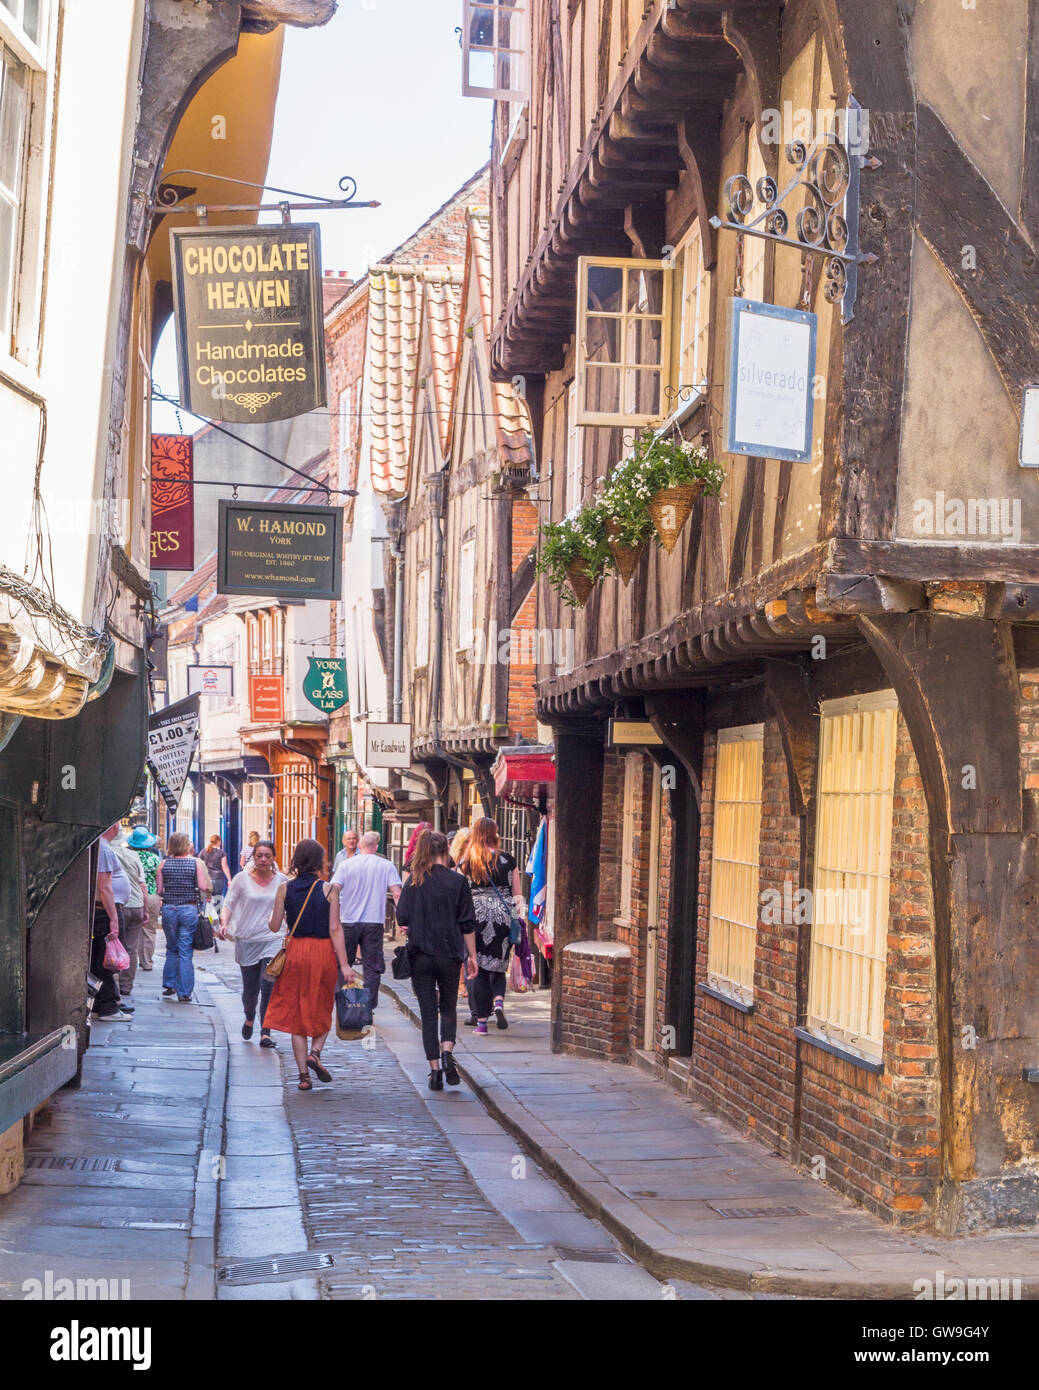 The Shambles is an ancient street in York, England, which has overhanging timber-framed buildings, originally butchers' - Stock Image